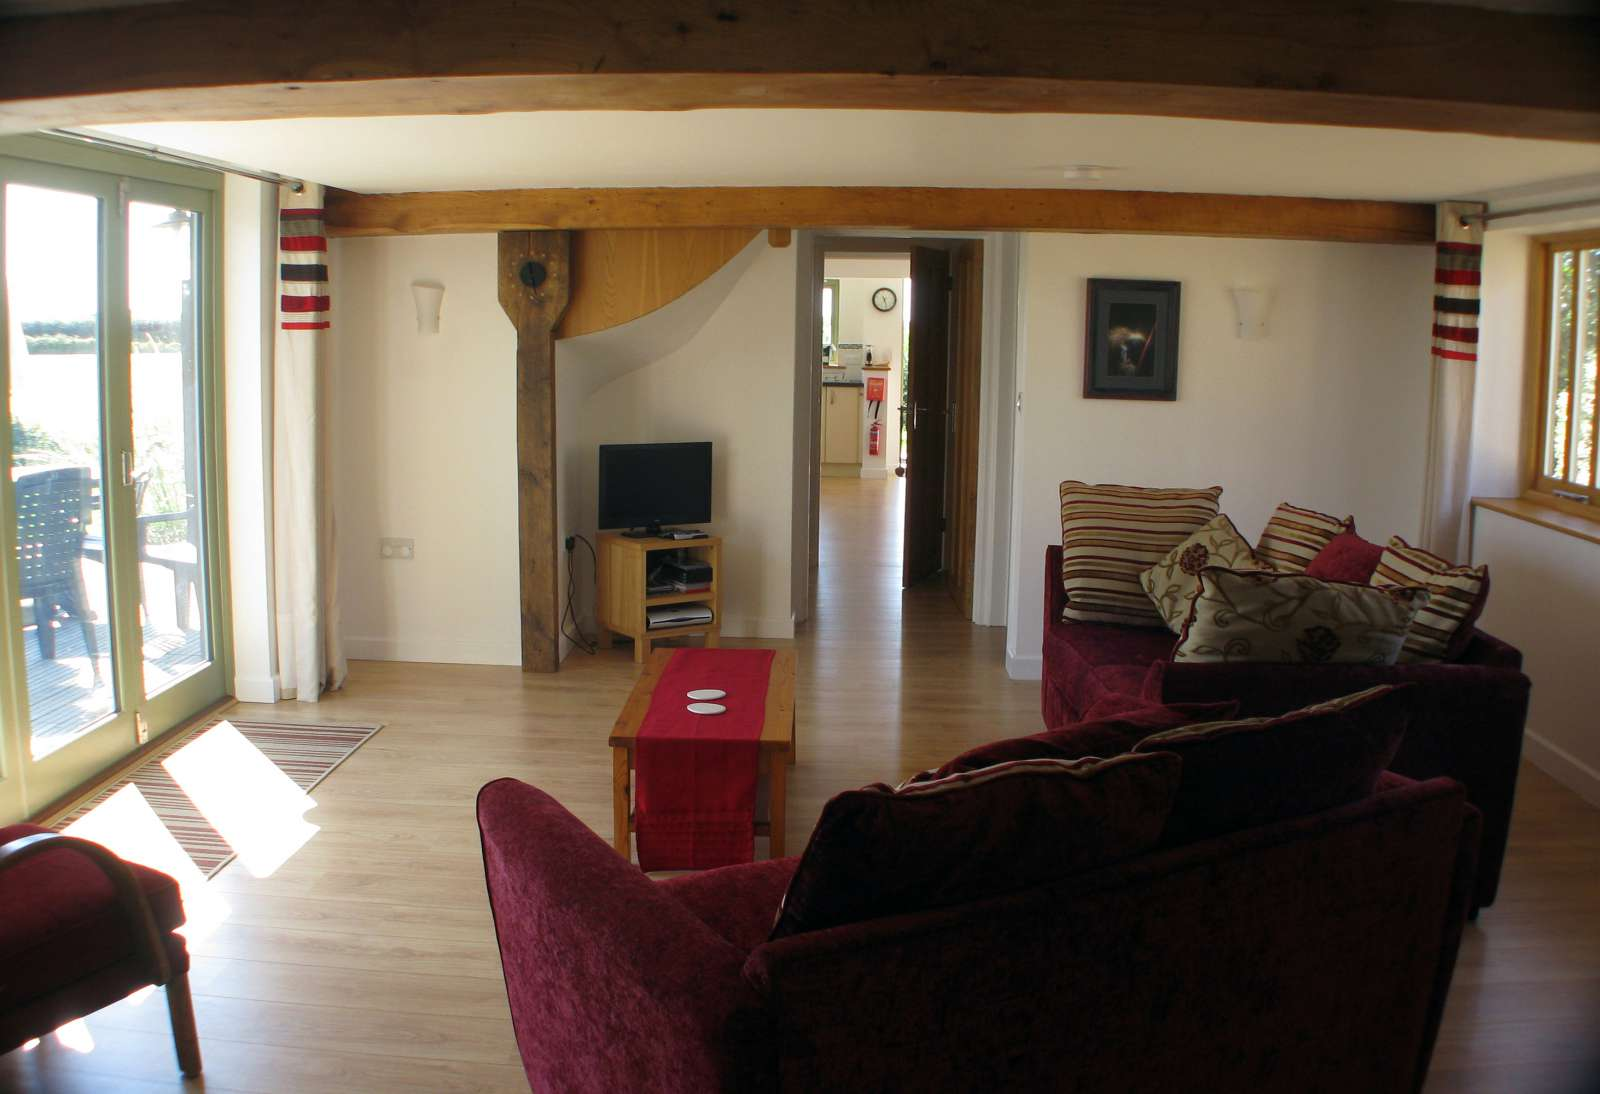 Holiday rental Cottage in Shorwell - The sitting room of The Little Barn is a large space to socialise in.